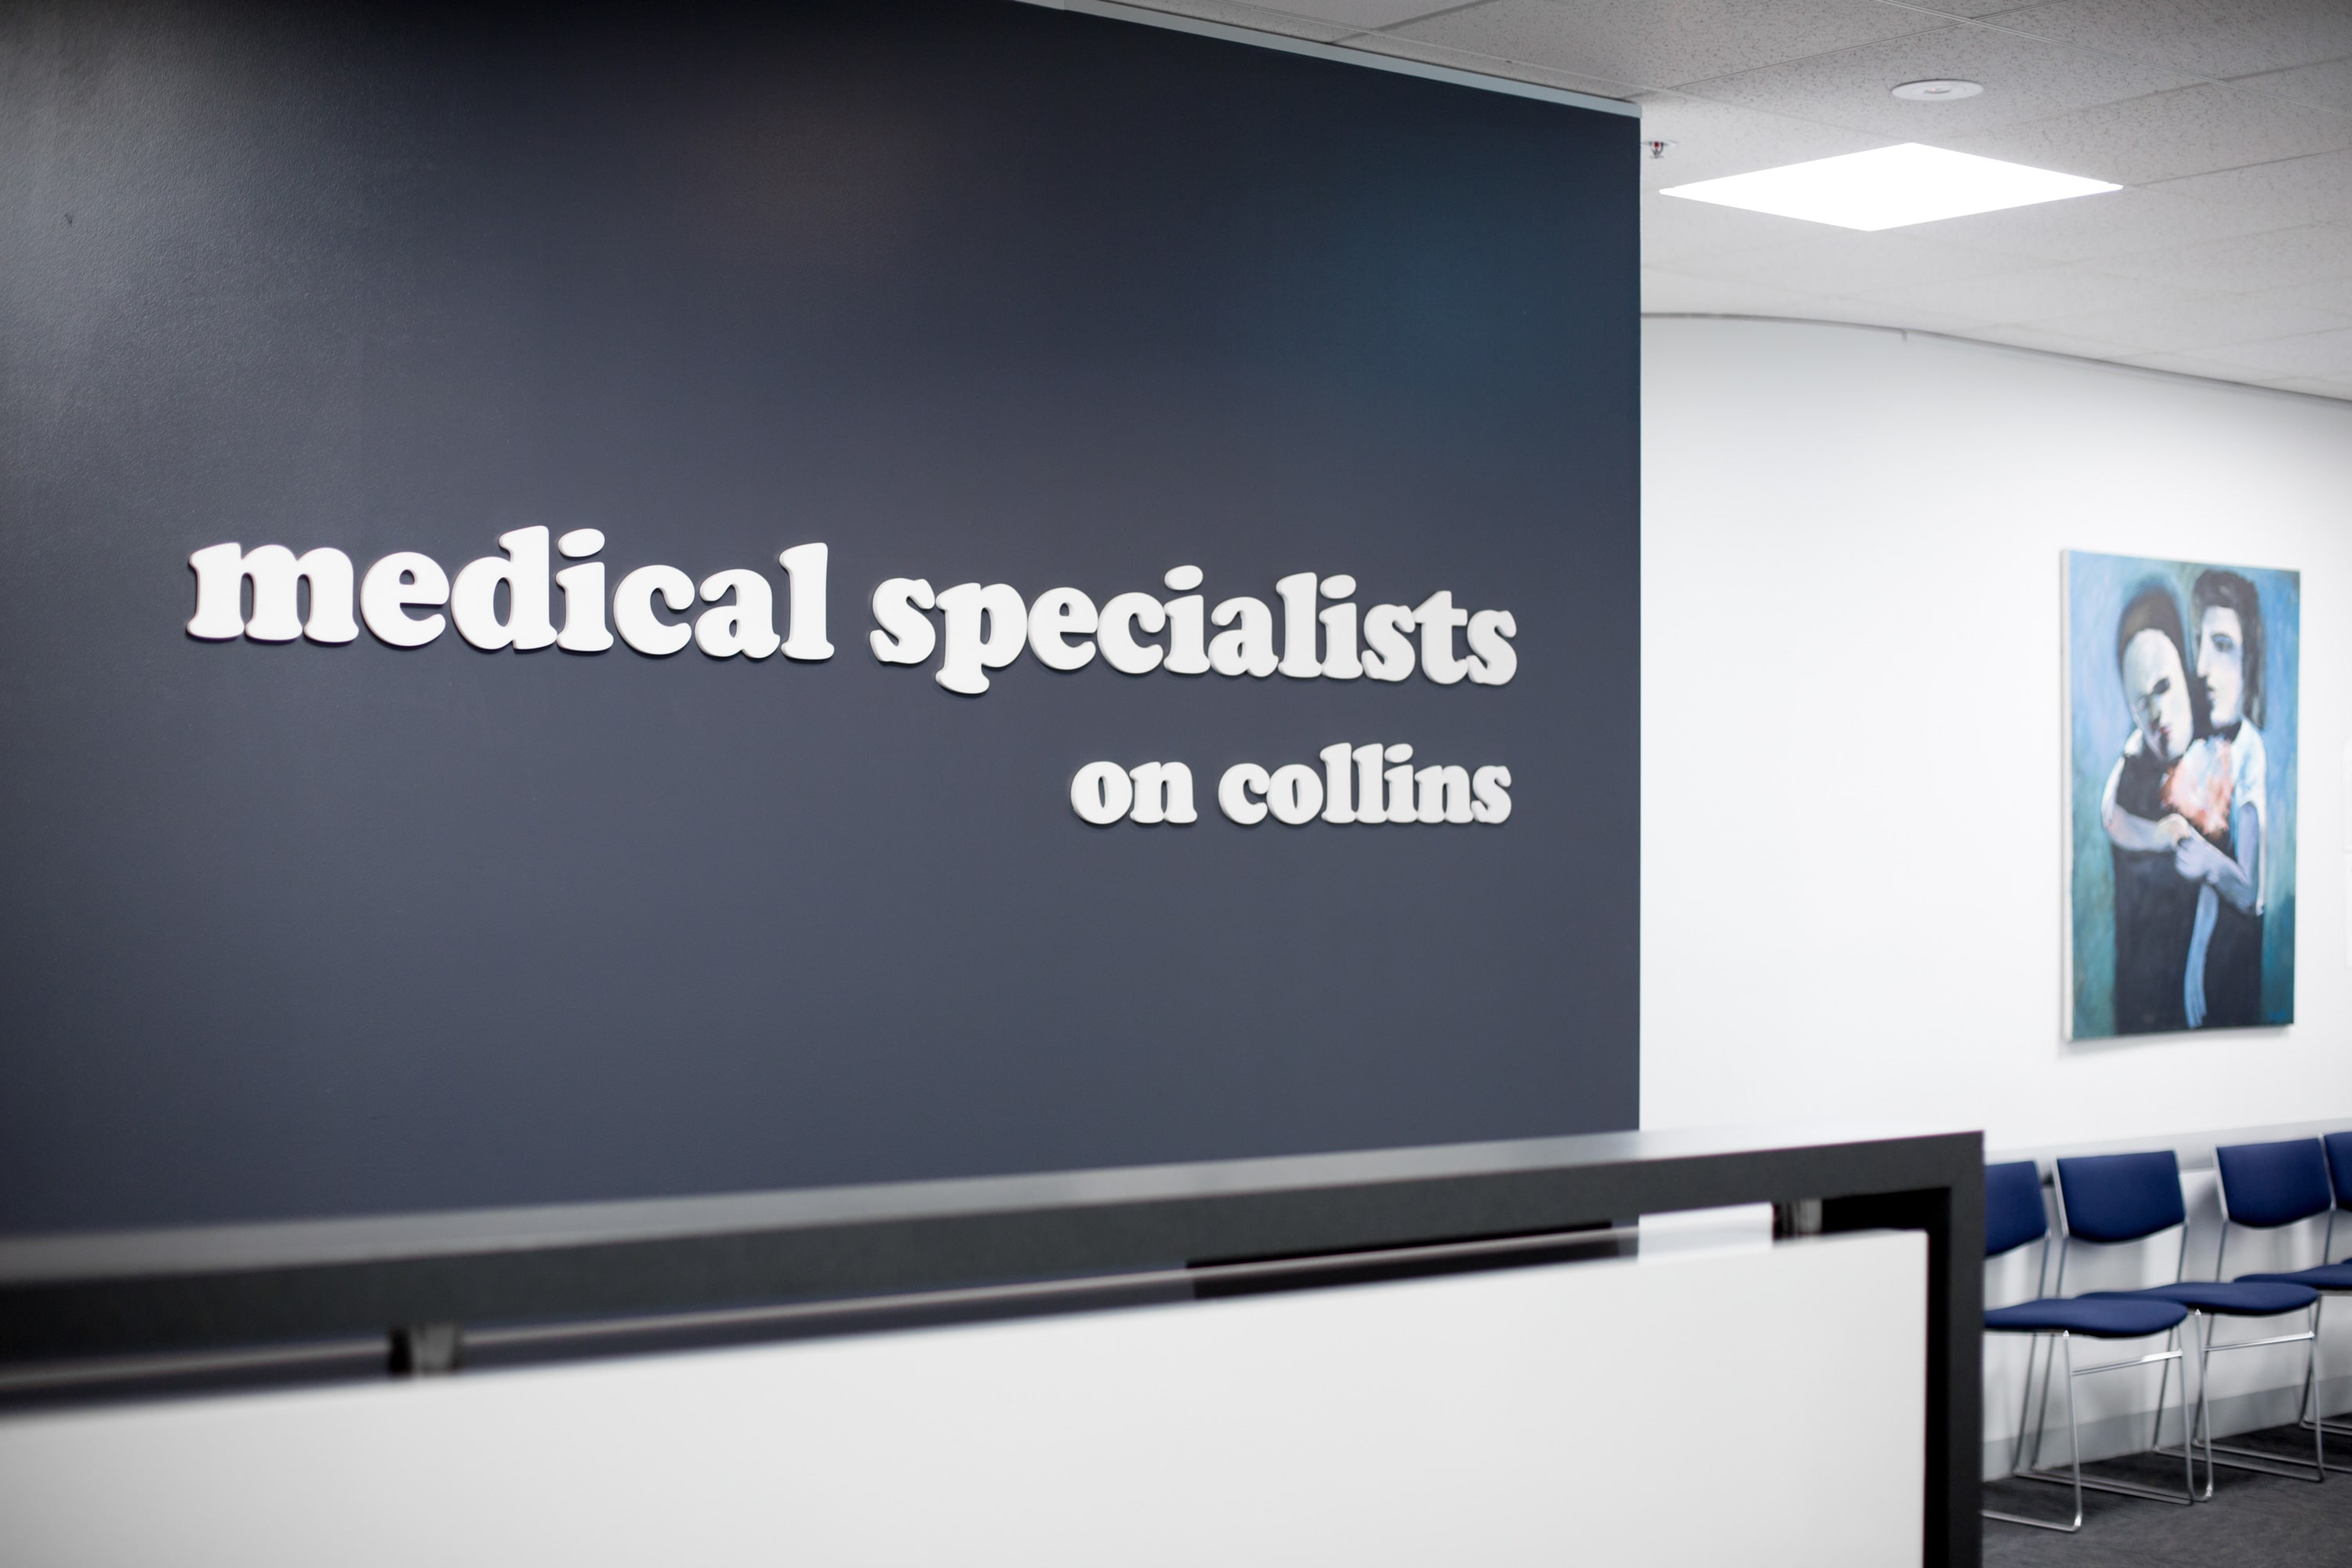 Medical Specialists on Collins